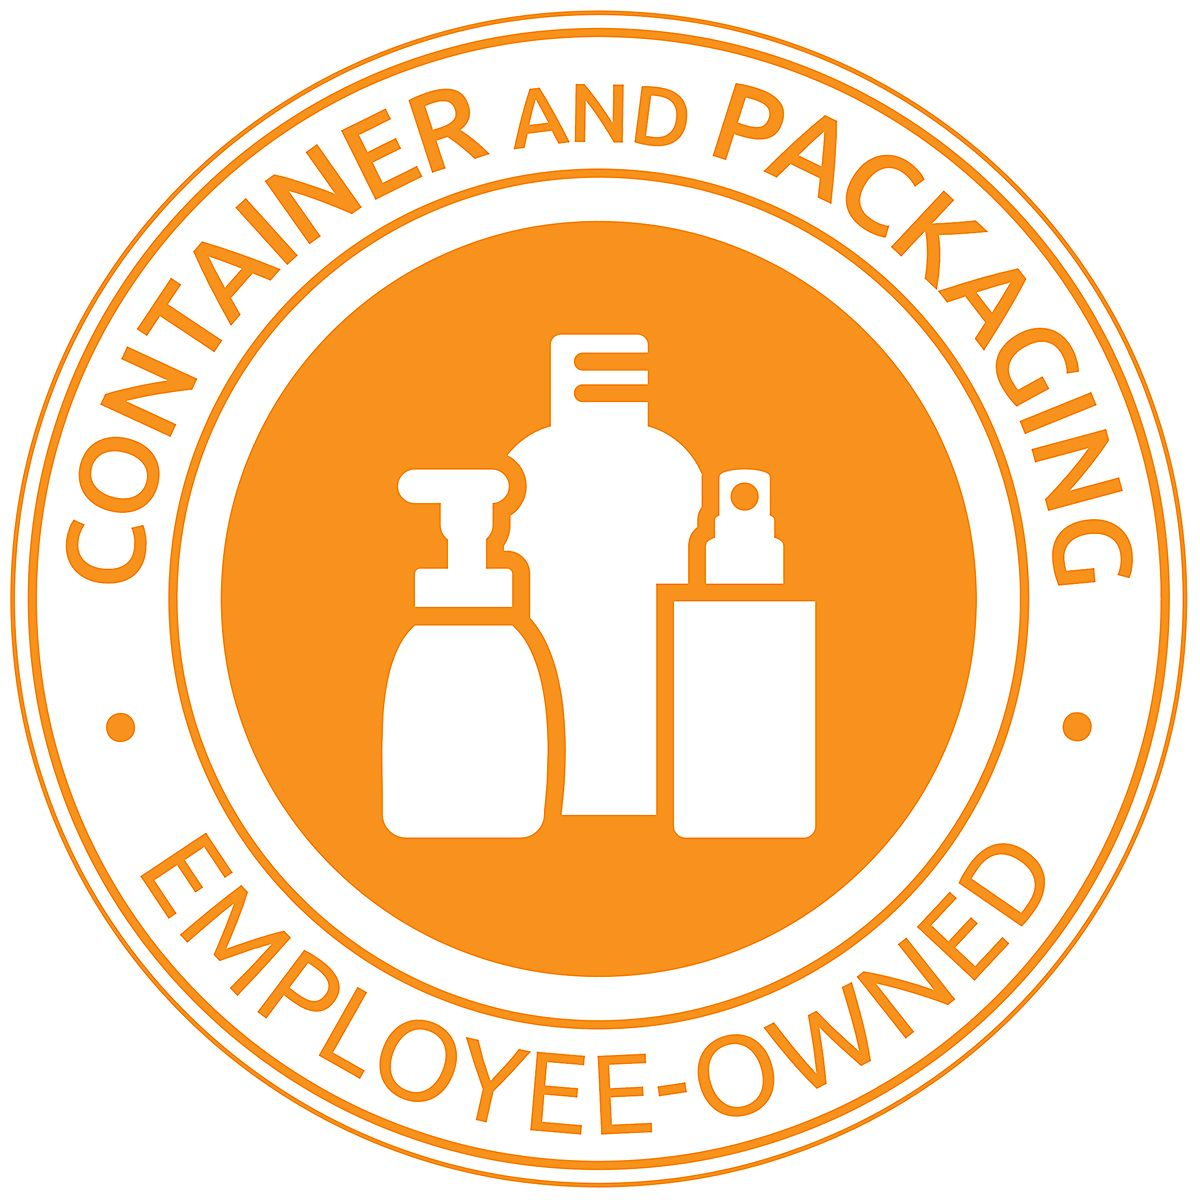 Container and Packaging Employee Owned Company